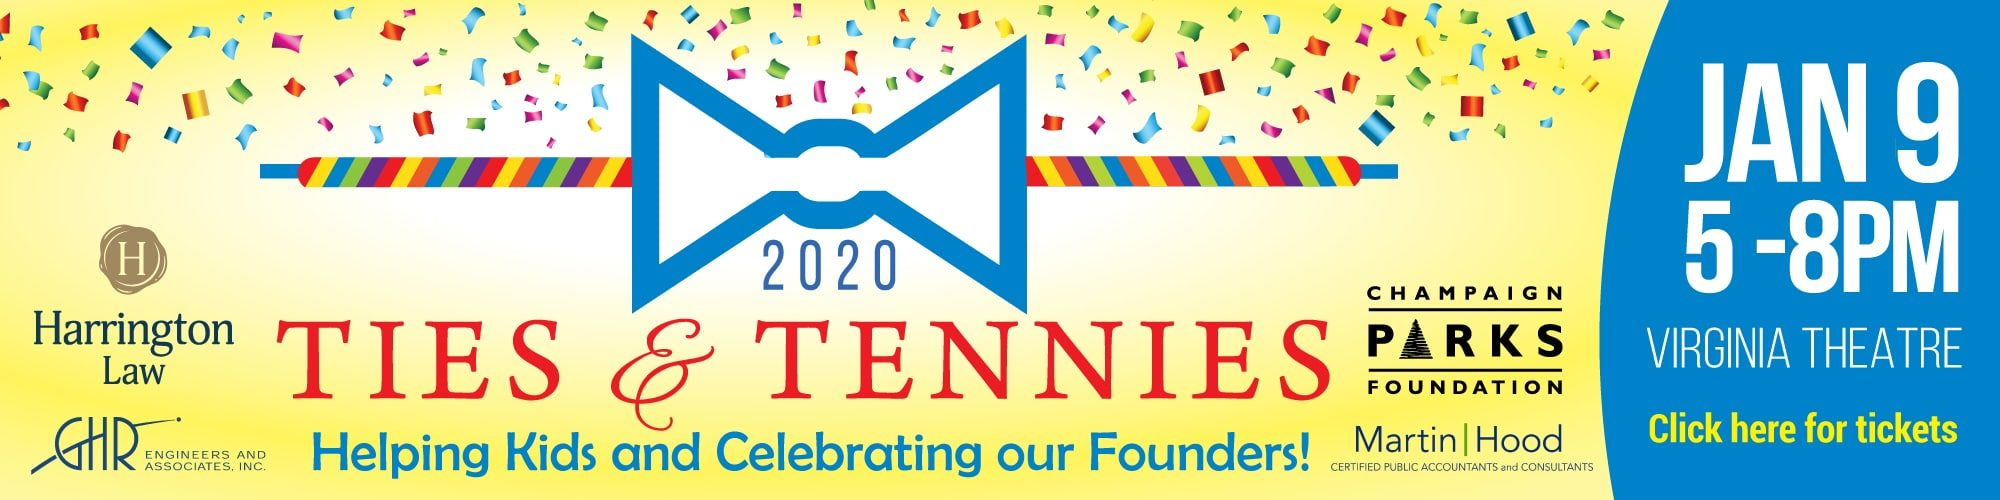 Ties & Tennies: Helping kids and celebrating our founders